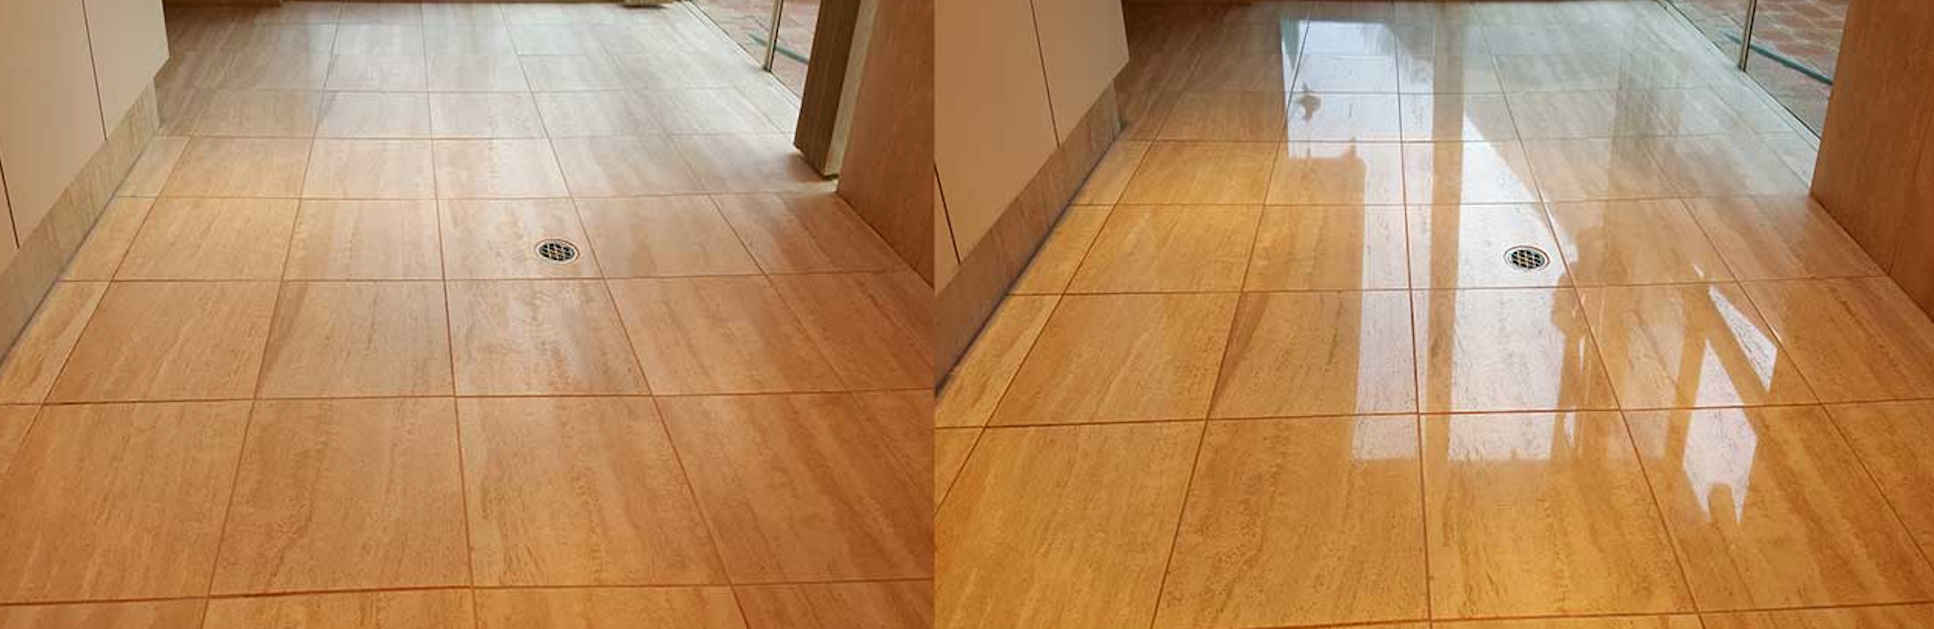 Compare before & after treatment by Best Marble & Tile Care